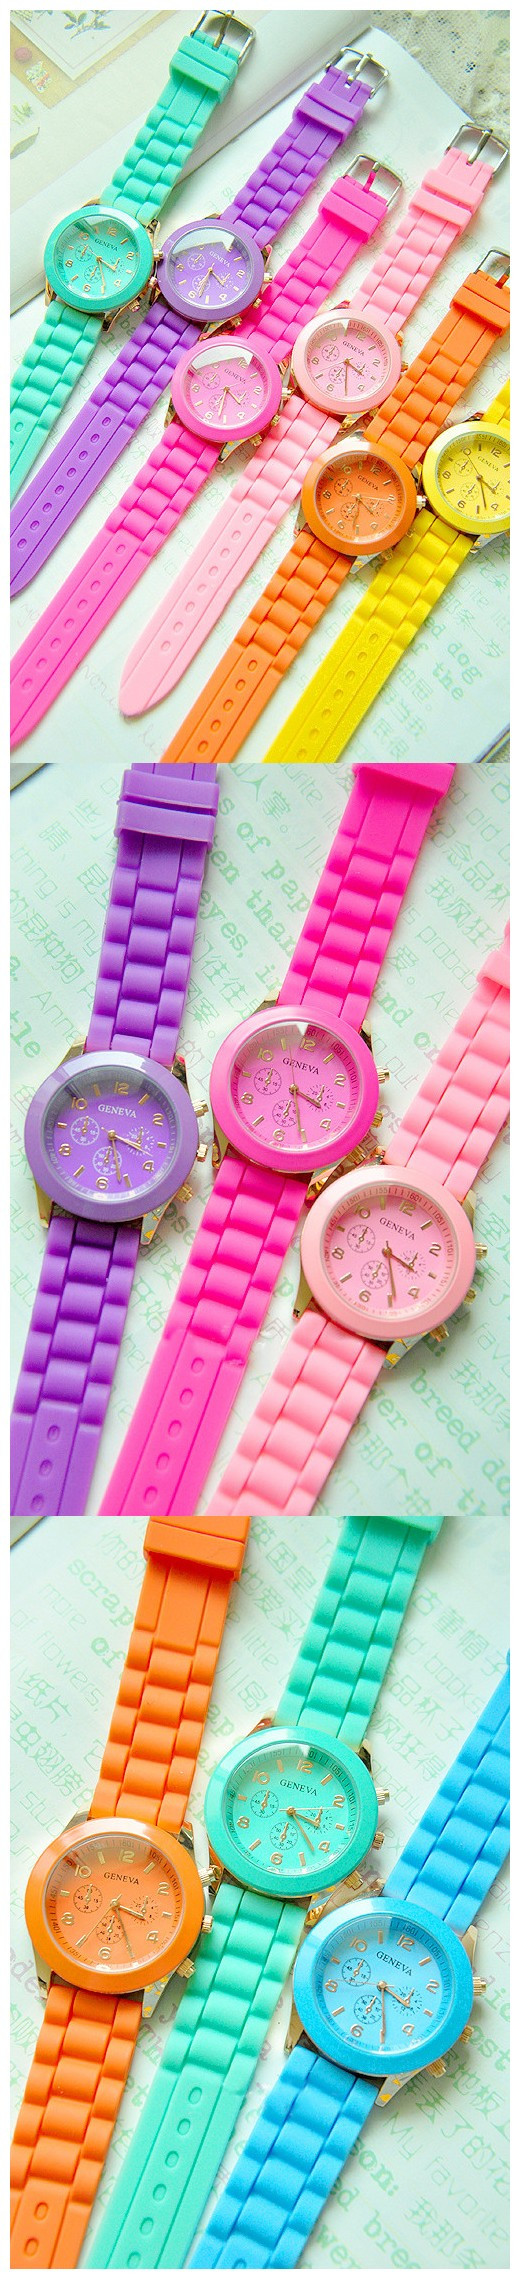 $5.99 Lady Fluorescent Color Jelly Watch Ice Cream Silica Gel 8 Colors Available - BornPrettyStore.com